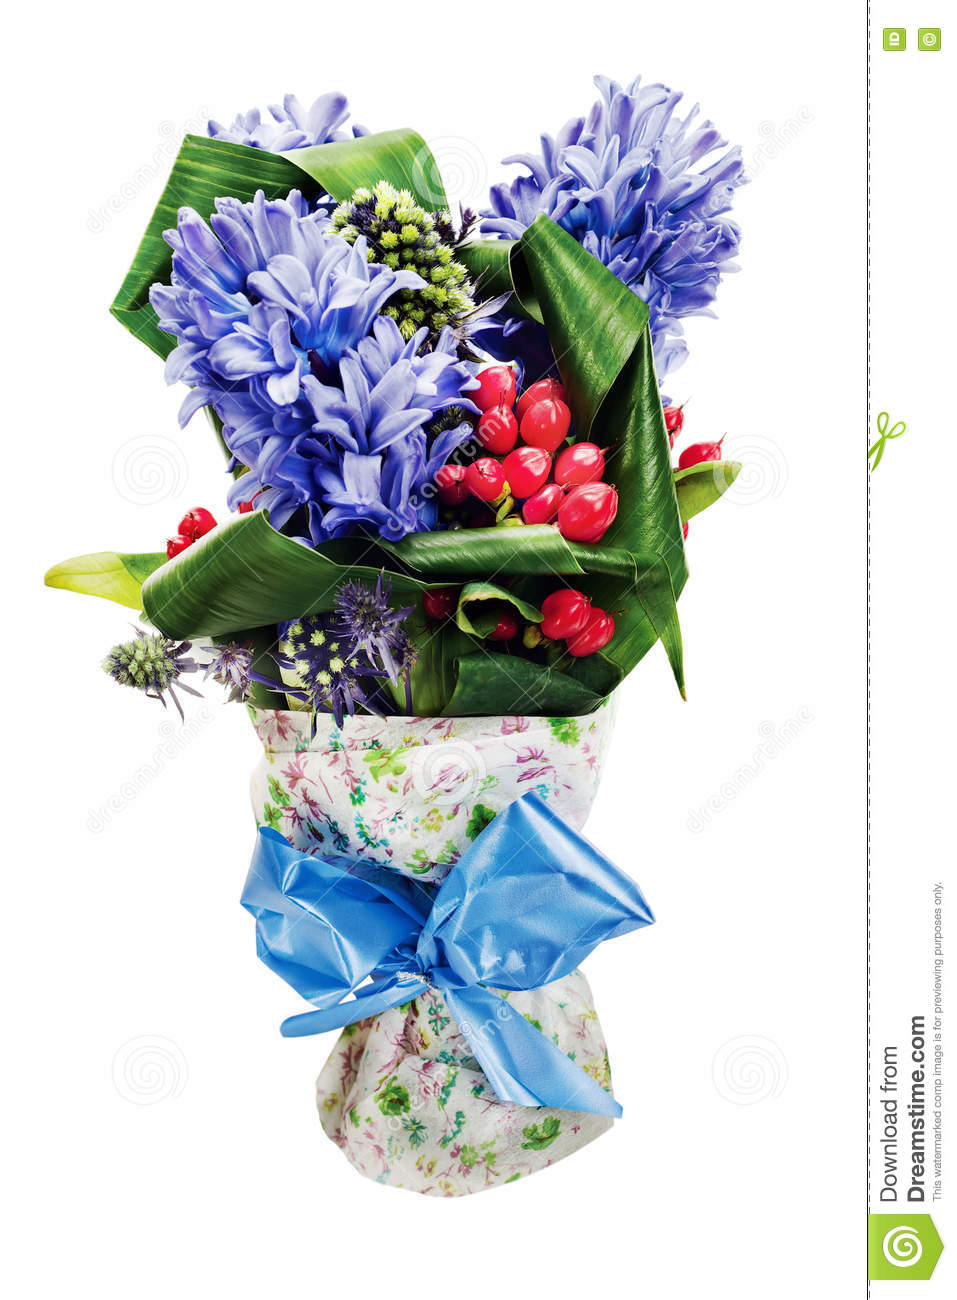 Colorful Flower Bouquet Isolated On White Background. Stock Image ...